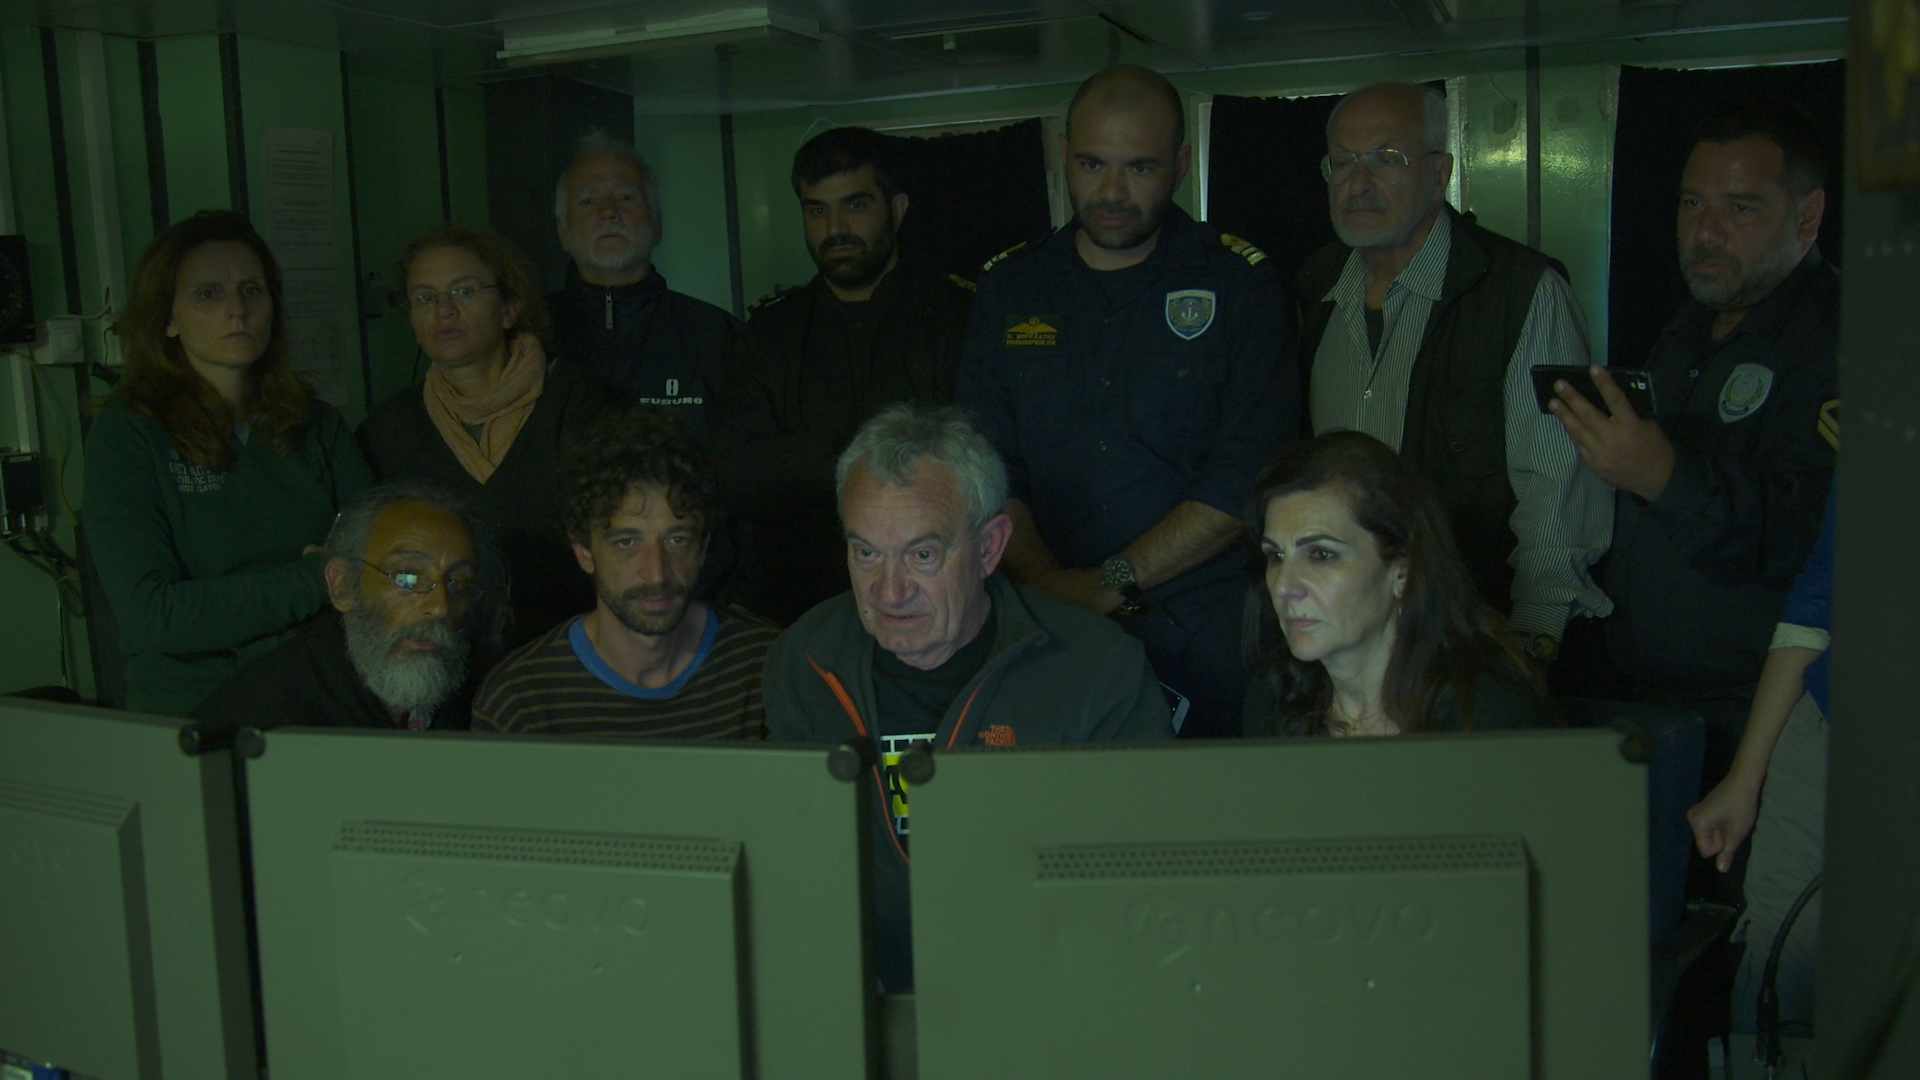 With eyes set on the monitors, the members of the expedition closely look at the images coming from the abyss.